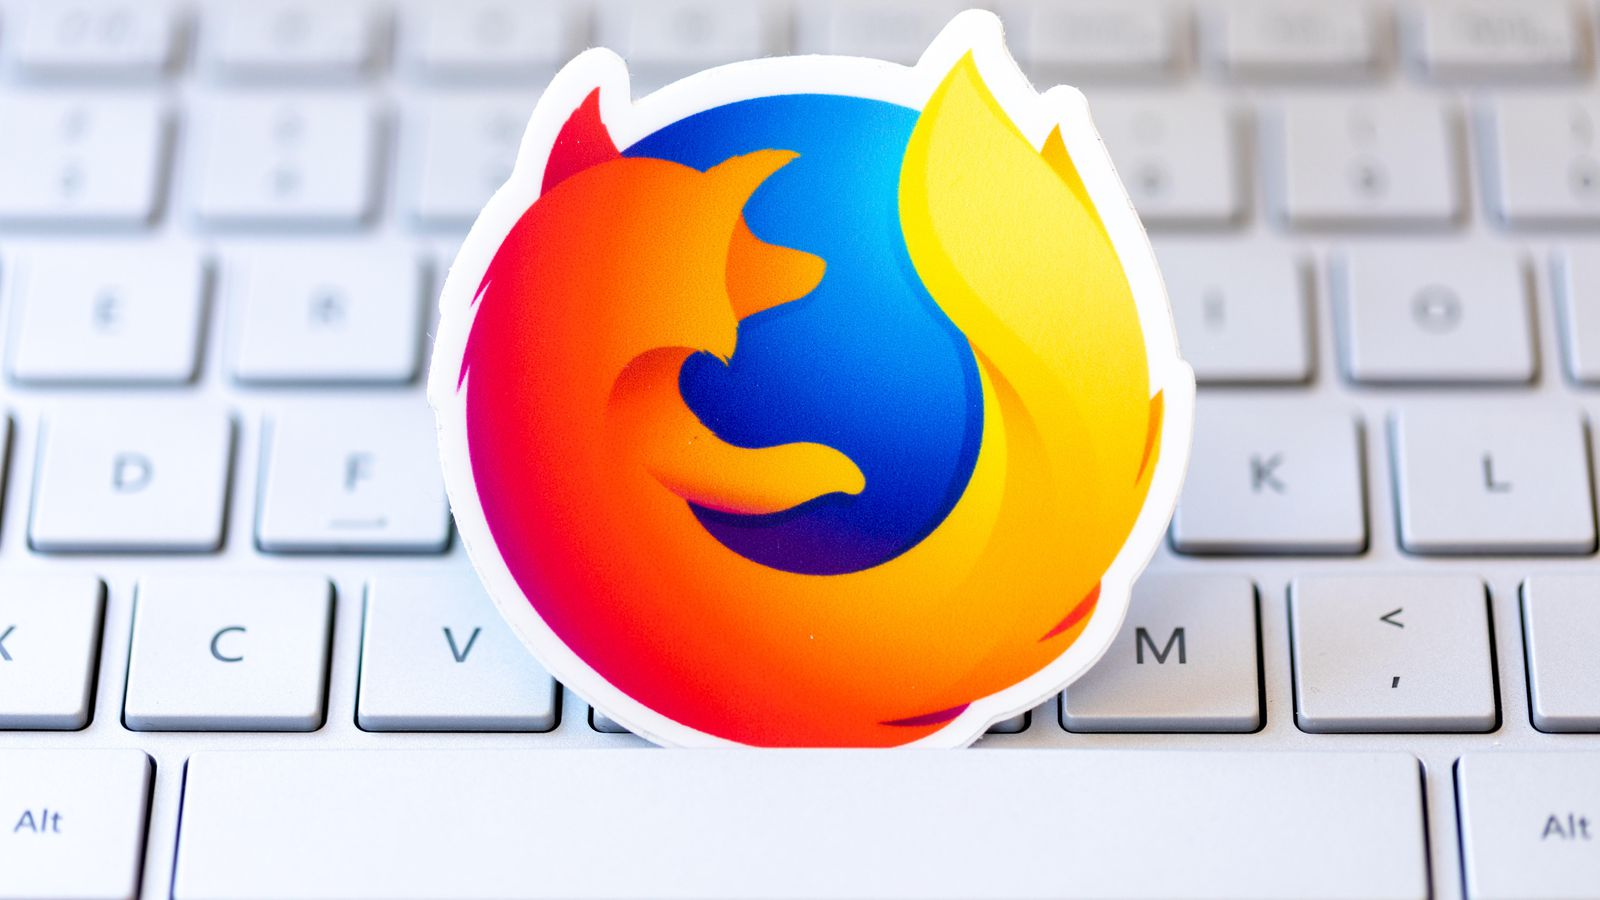 Firefox to Block Cryptojacking Malware in New Browser Releases